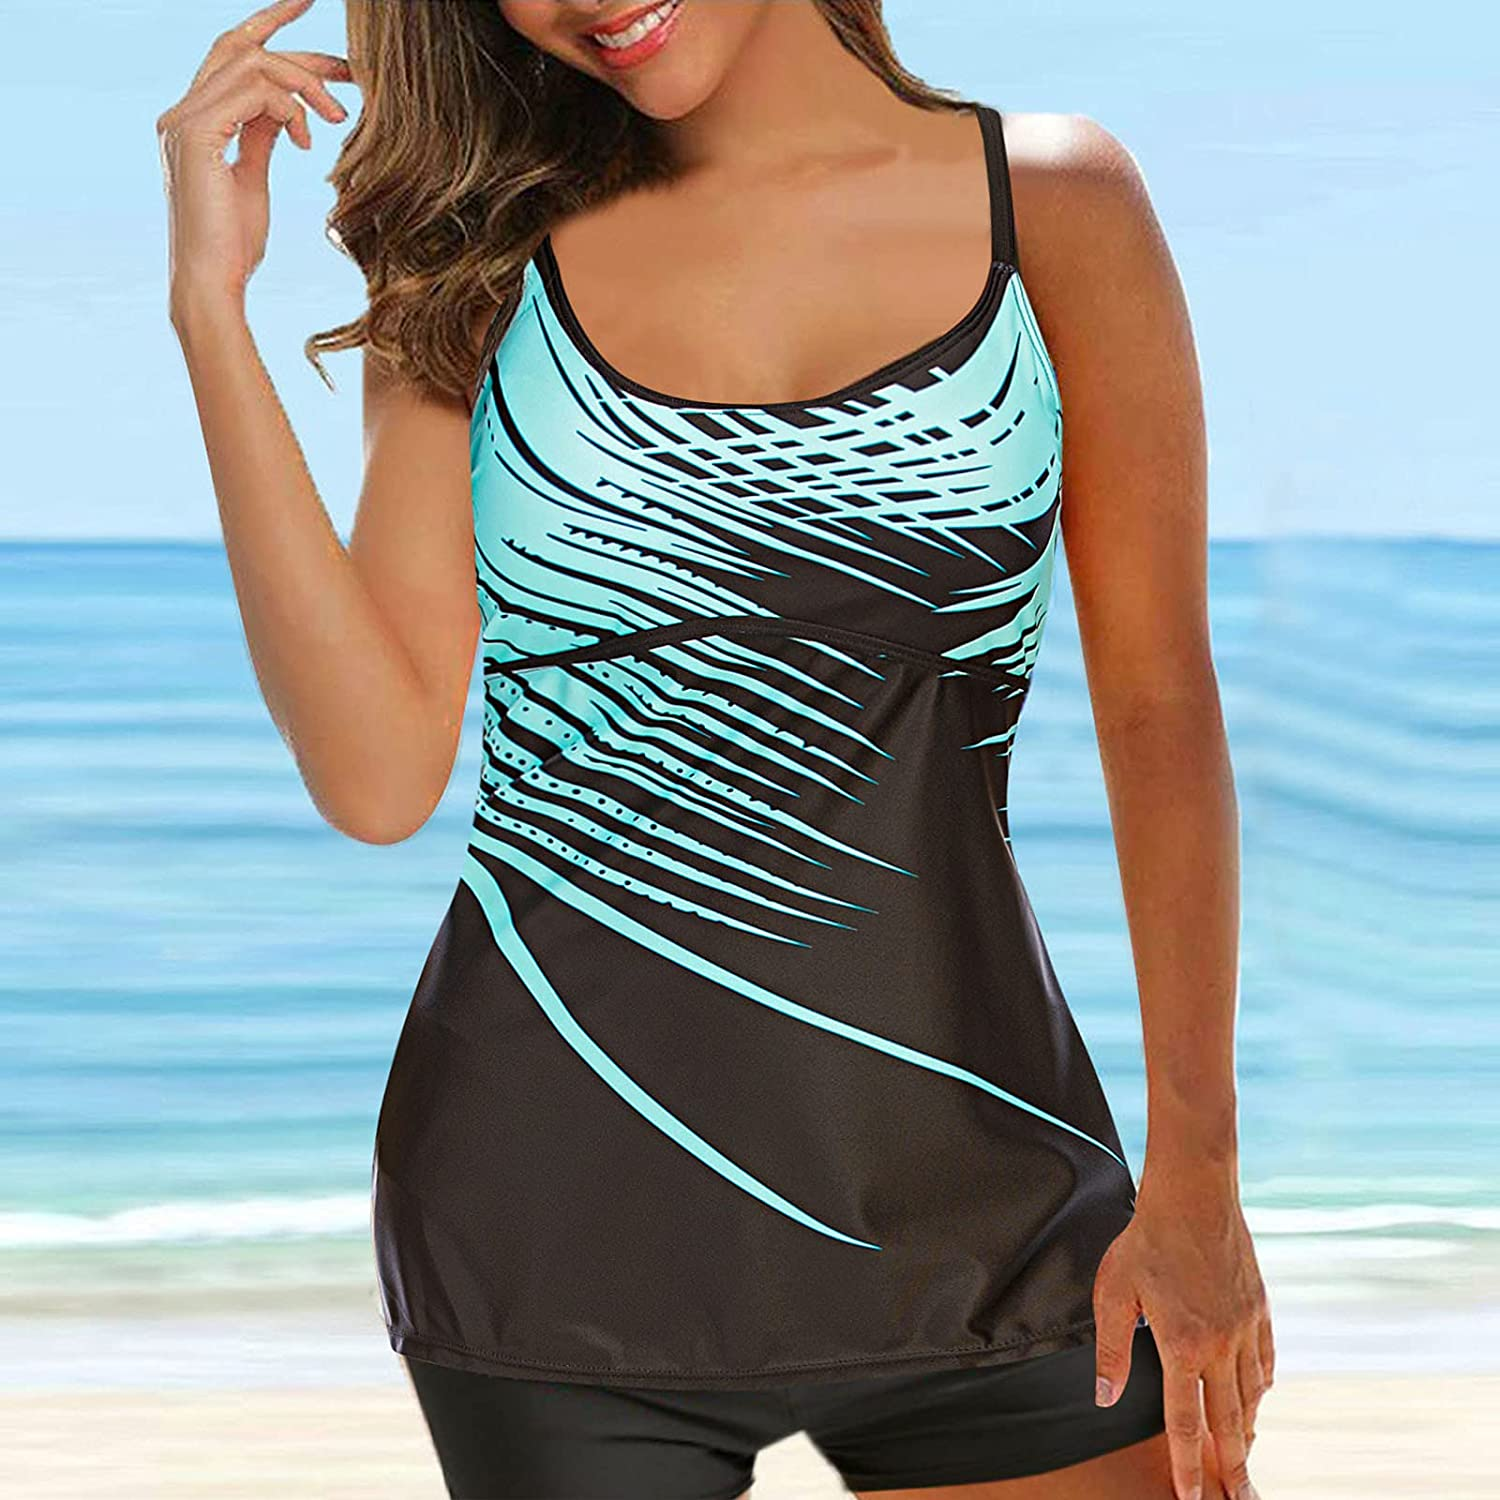 VBNG Swimsuits for Women Tankini Top Bathing Suits Tummy Control Boyshorts Swimming Suits,N210614011